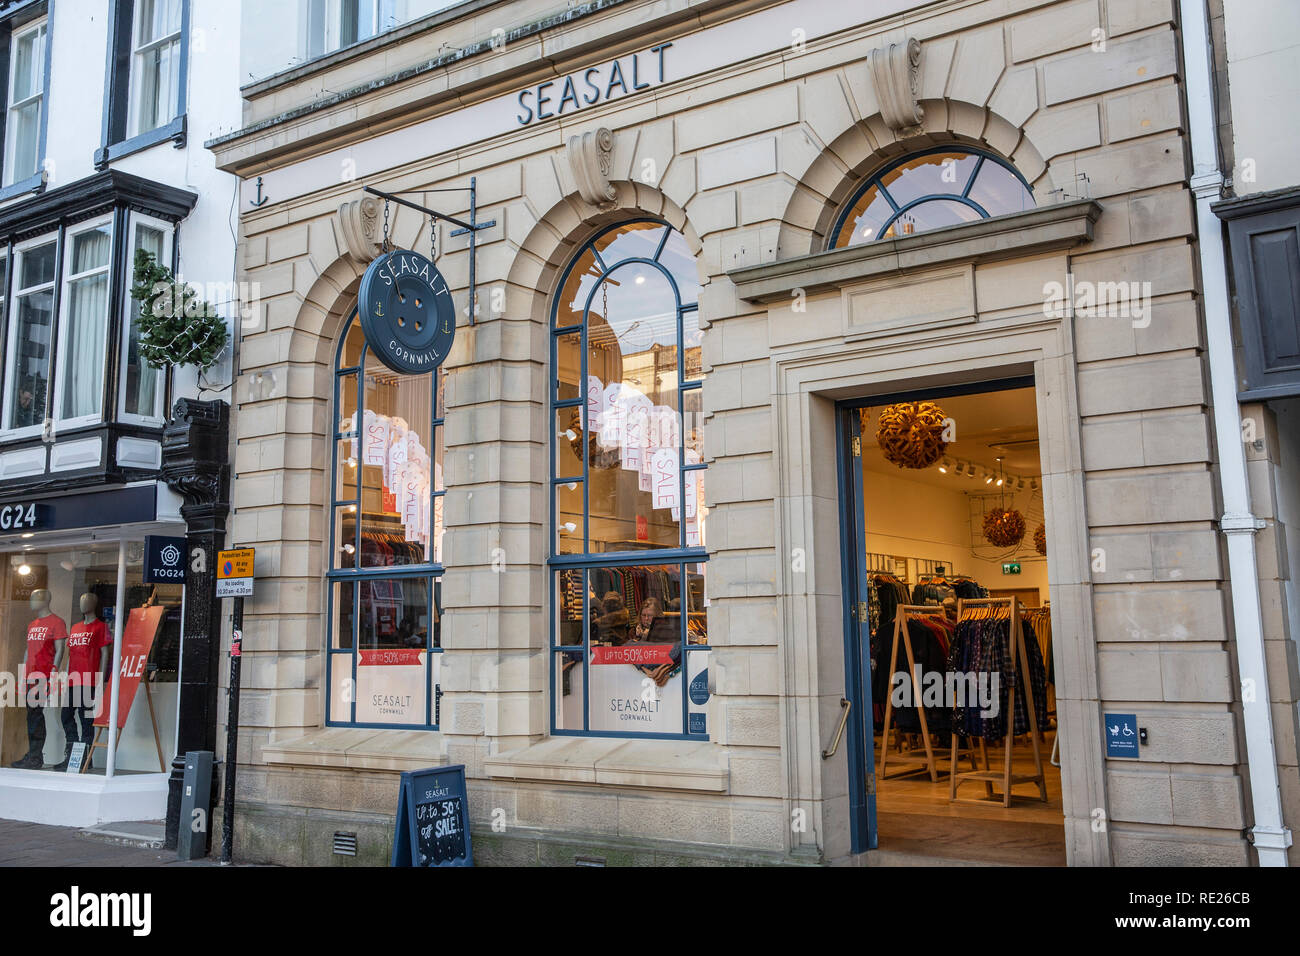 Seasalt of Cornwall, company selling womens and ladies clothing, store shown here is in Keswick town centre,Lake District,England - Stock Image